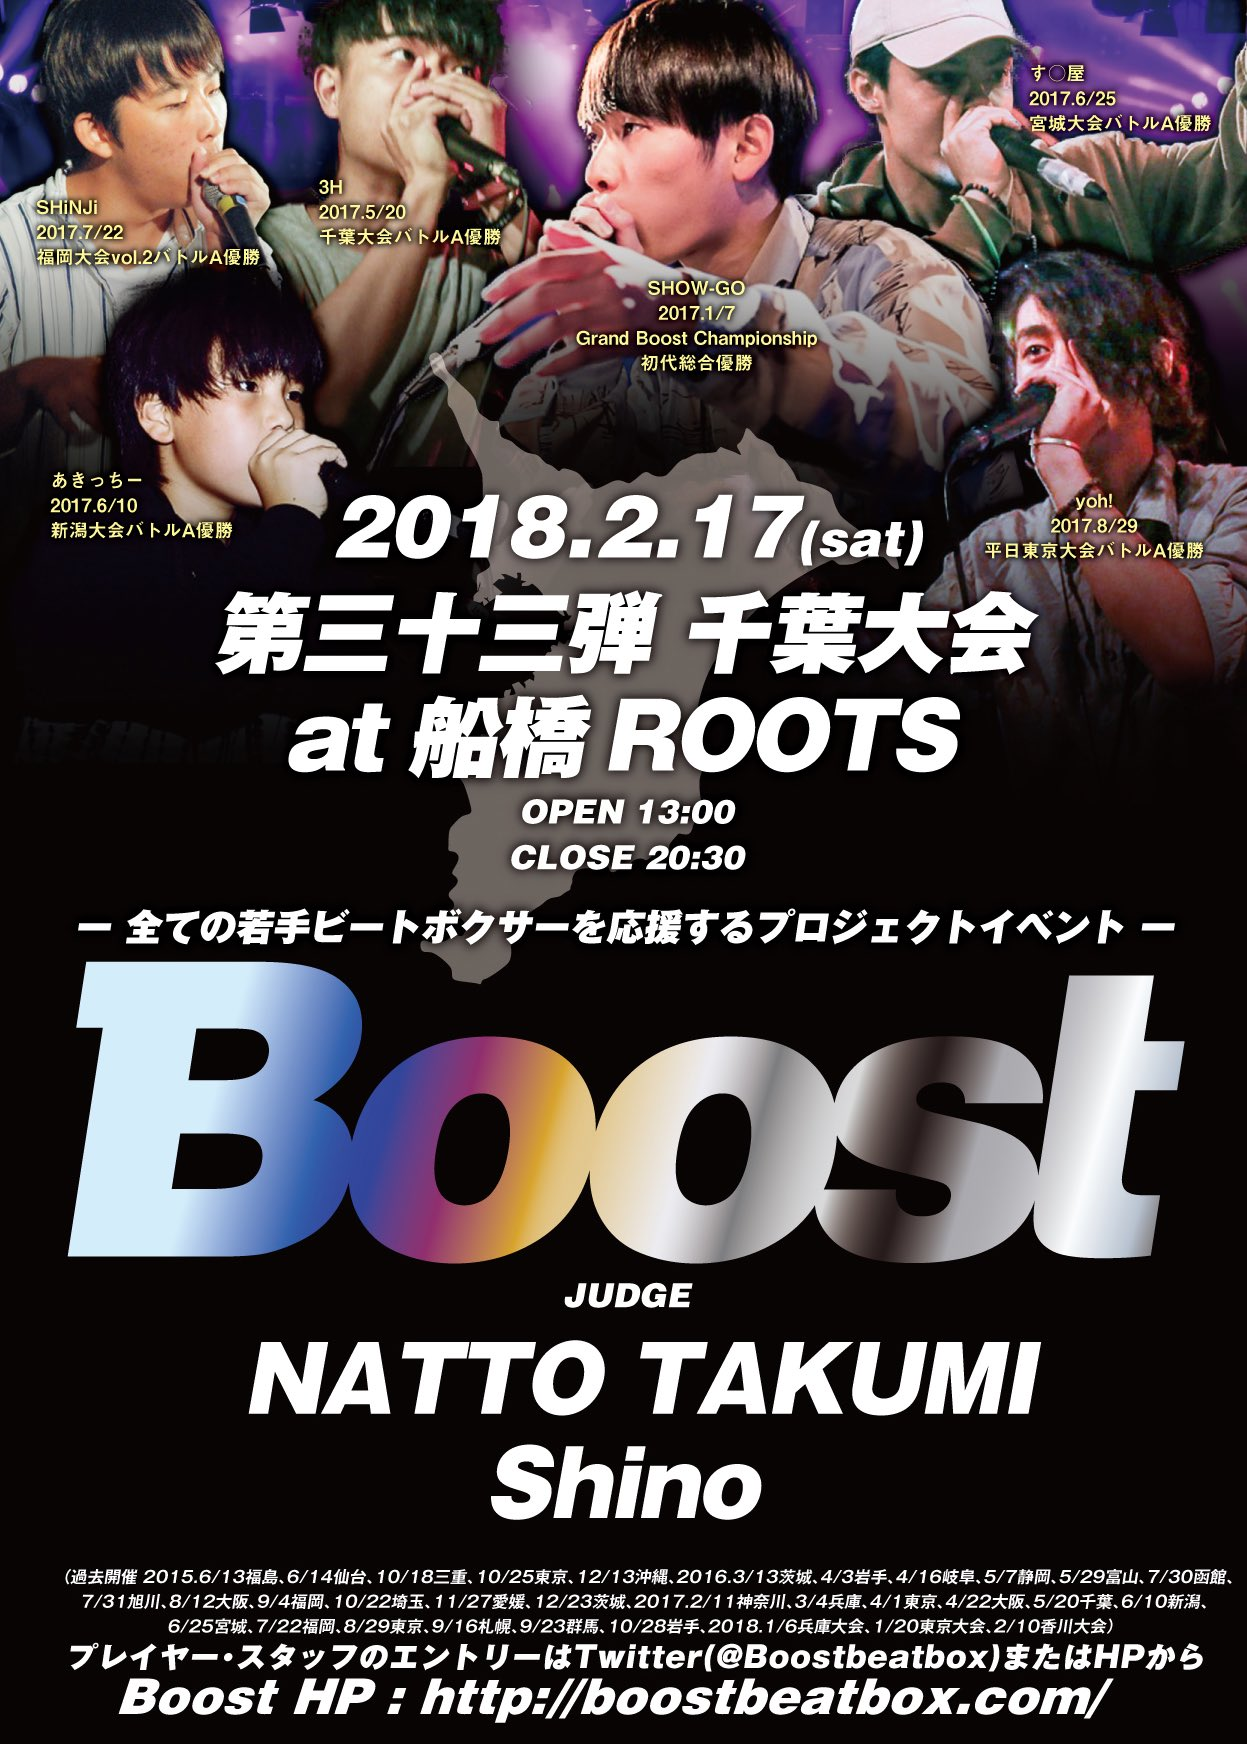 Boost千葉大会の開催が決定!